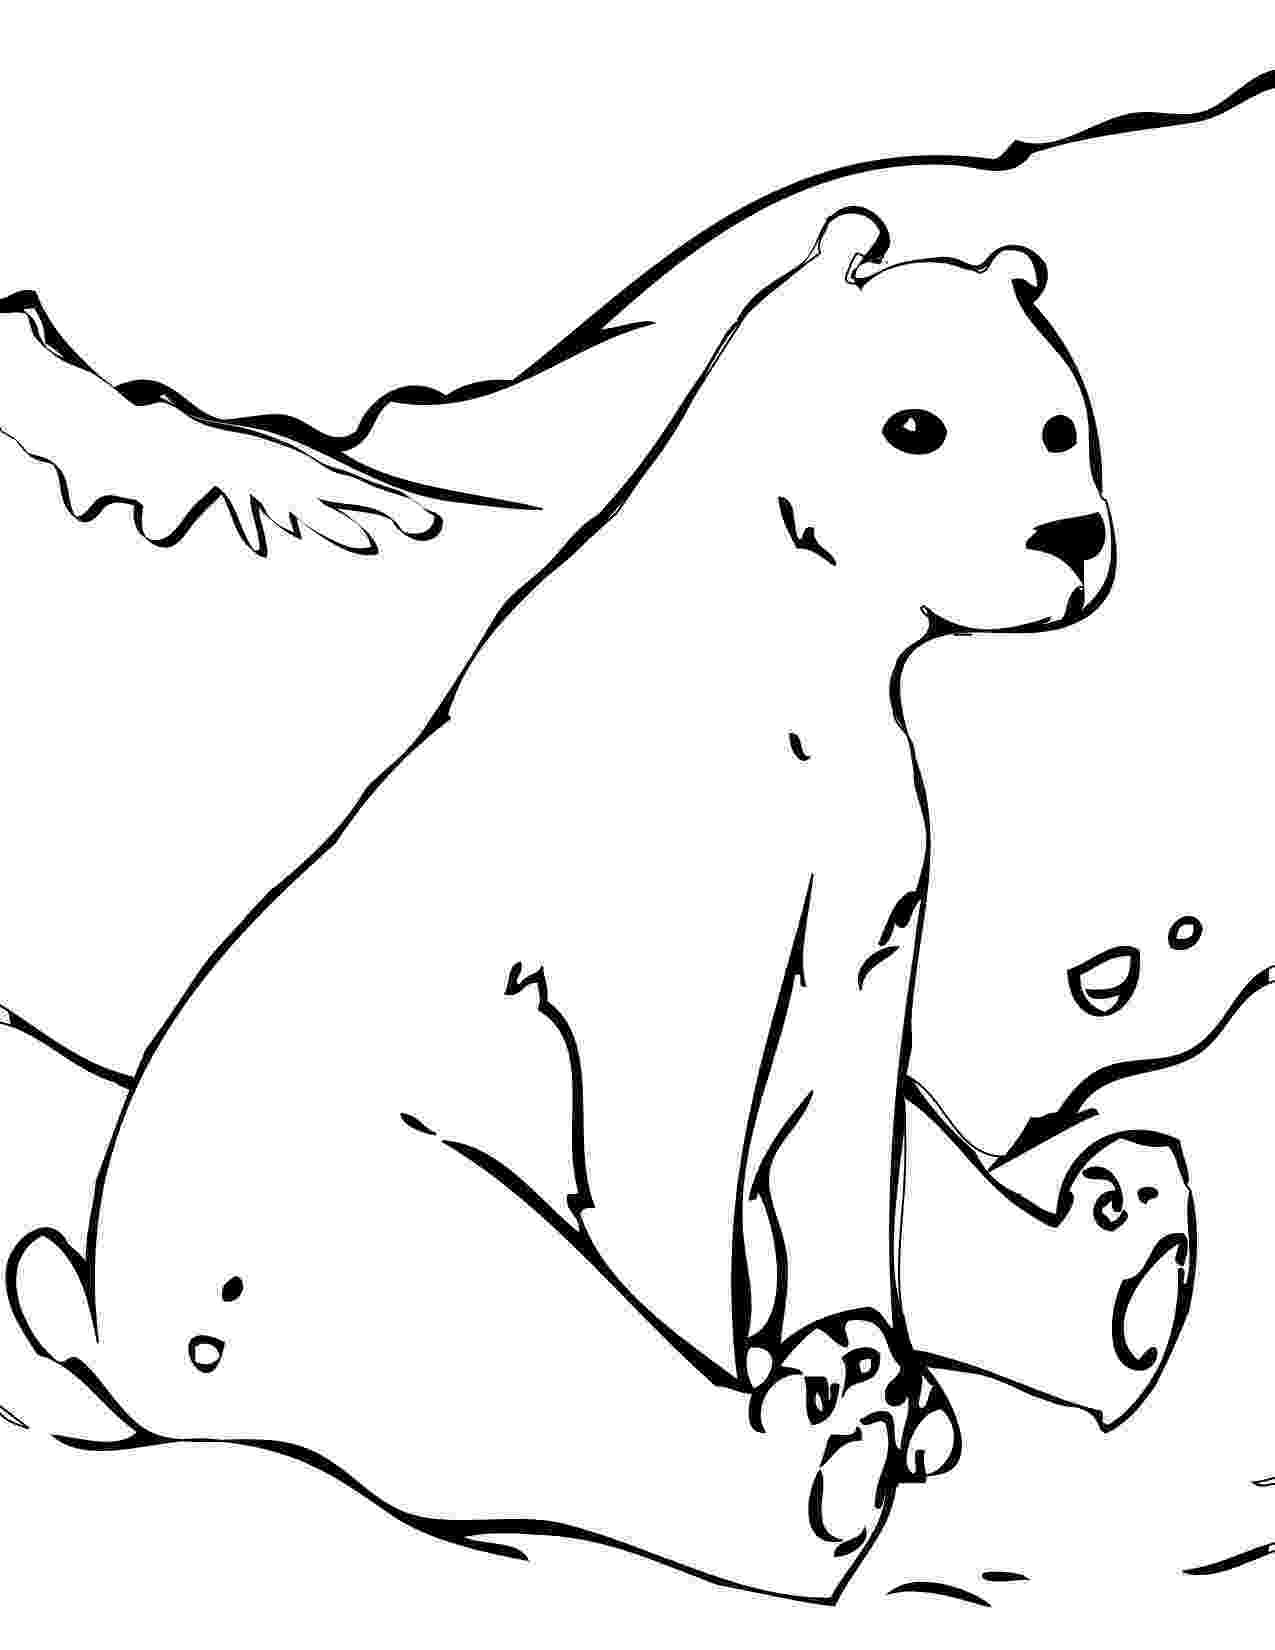 pictures of polar bears to color polar bear coloring page bit of a dog39s head but the to pictures polar of bears color